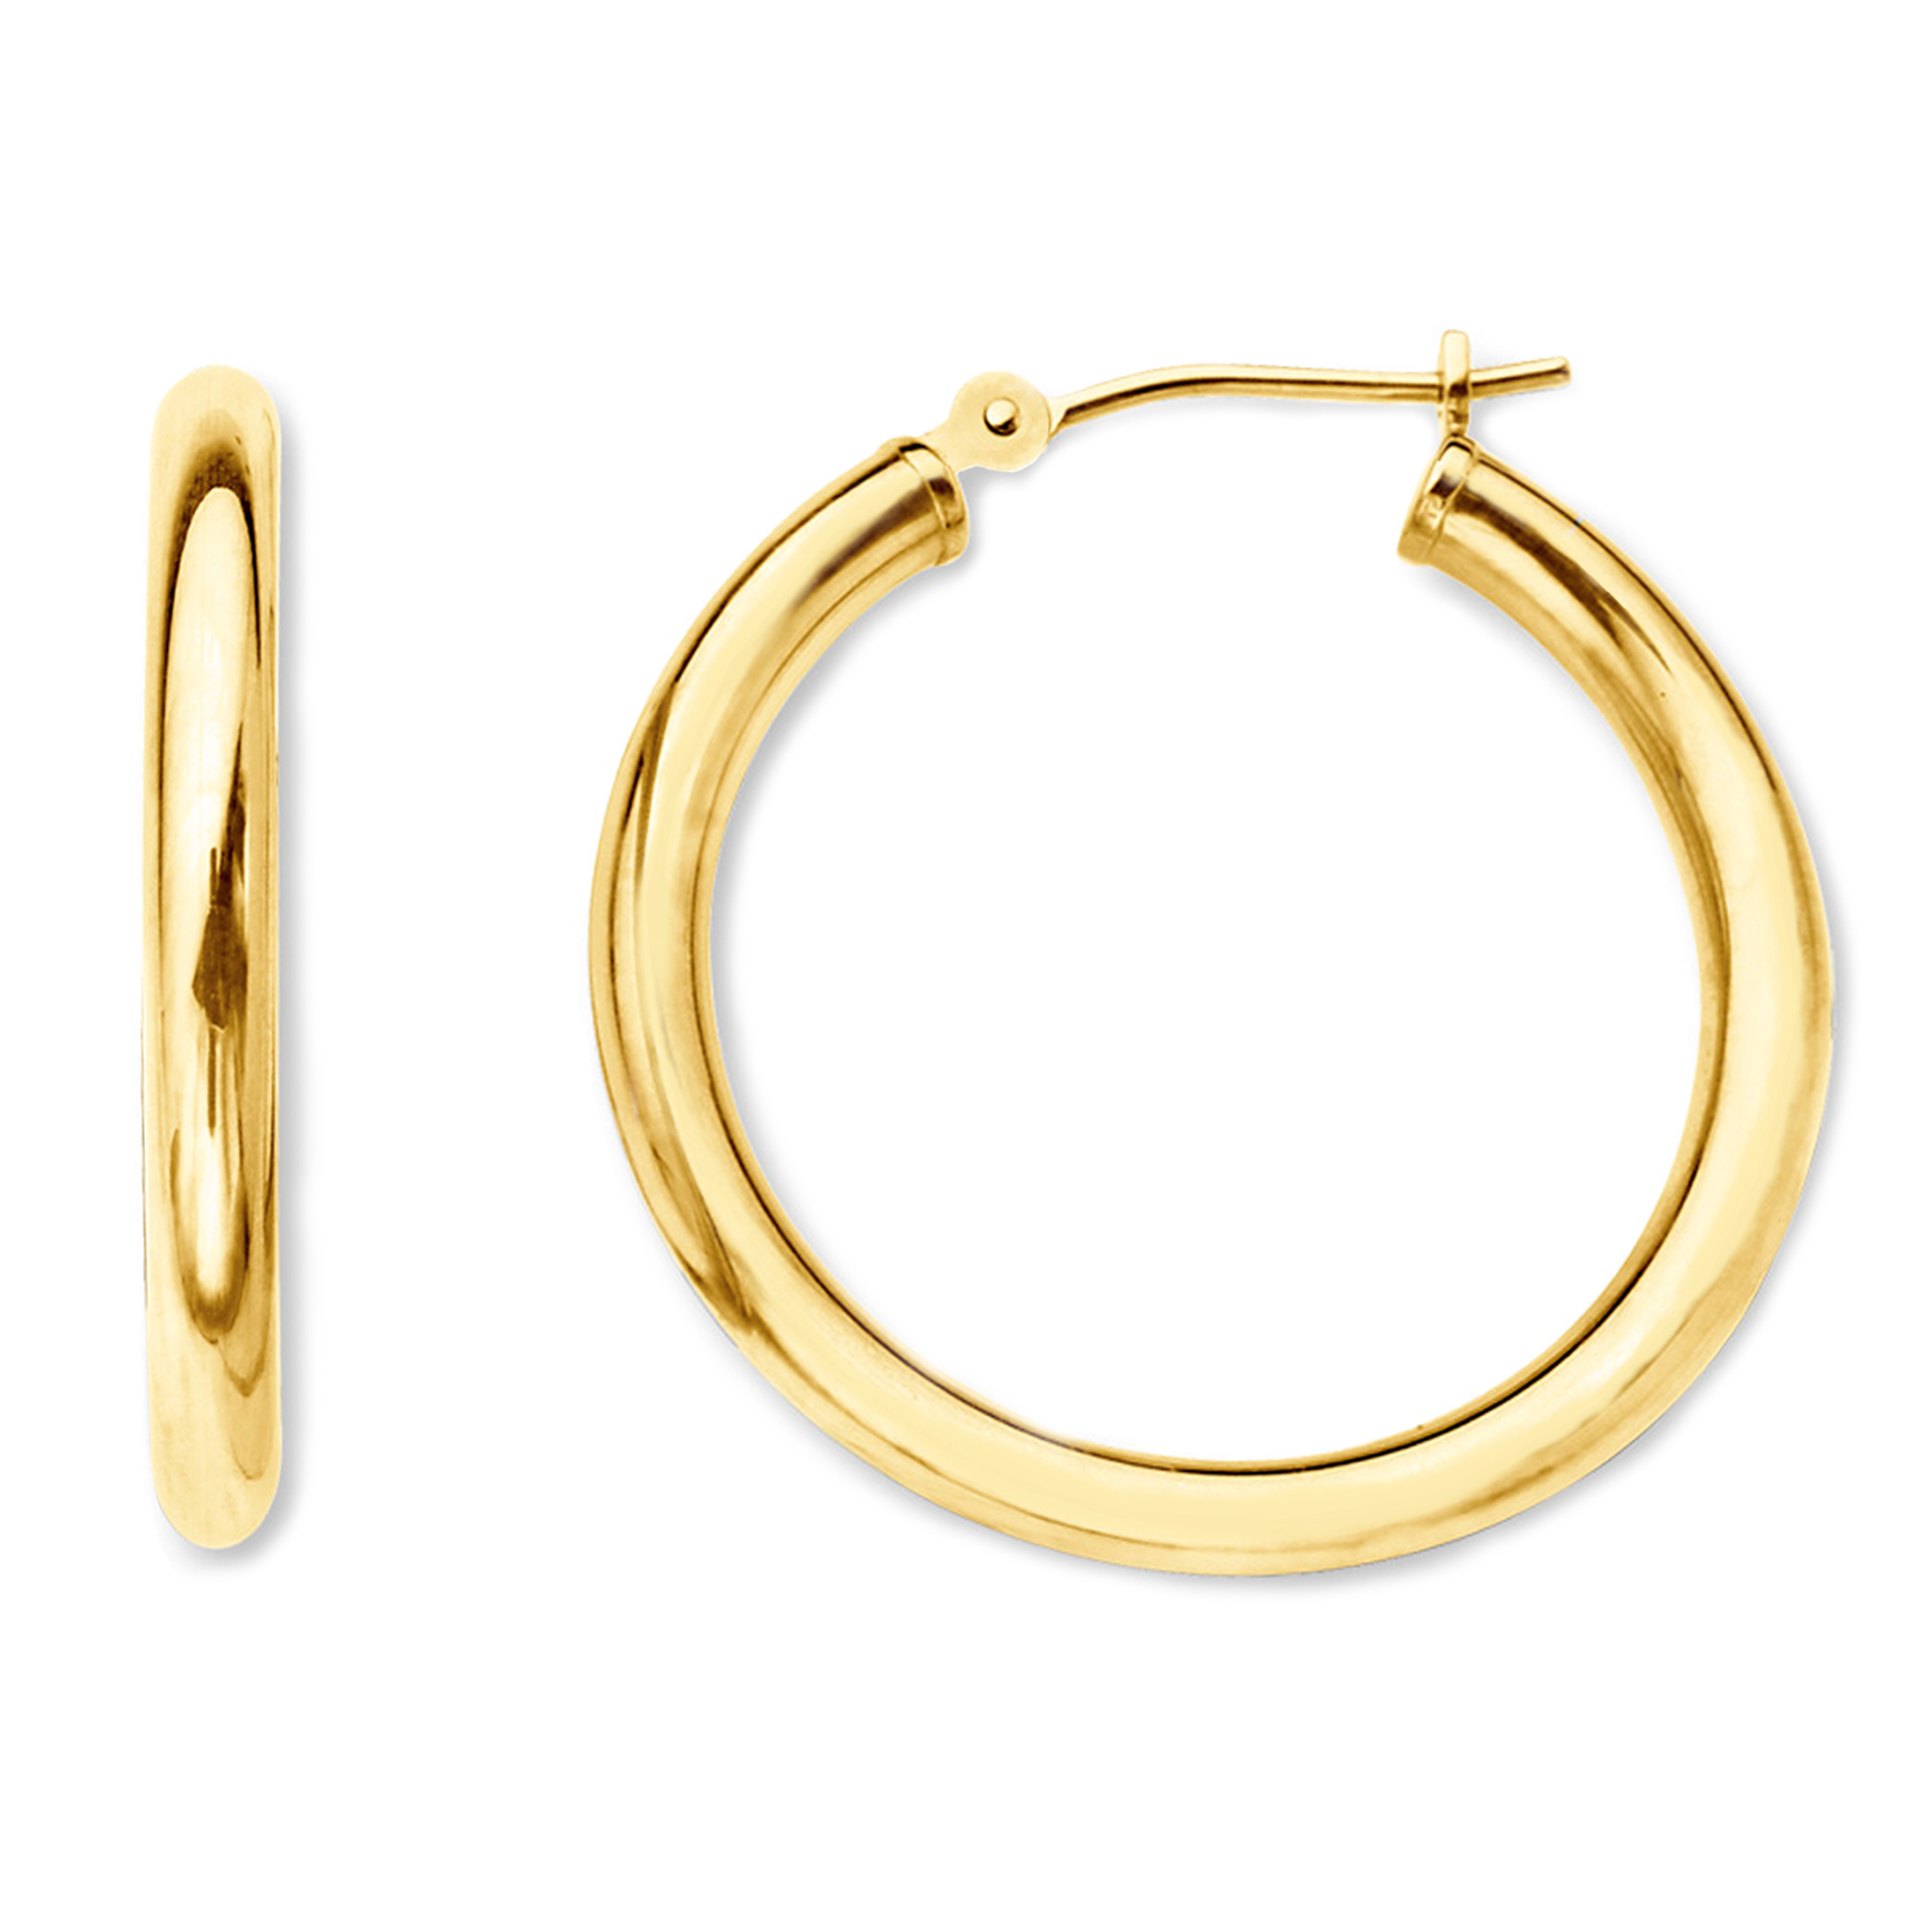 14K Yellow Gold 2MM Shiny Round Tube Hoop Earrings, 30mm Complete your jewelry collection with a gorgeous pair of 14K gold hoop earrings. Whether you prefer large bohemian look or tiny orbs, you'll discover plenty of sizes to match your style. These earrings have a secure snap post clasp making them easy to wear and remove. Earrings come in a  gift box making them ready to be gifted.